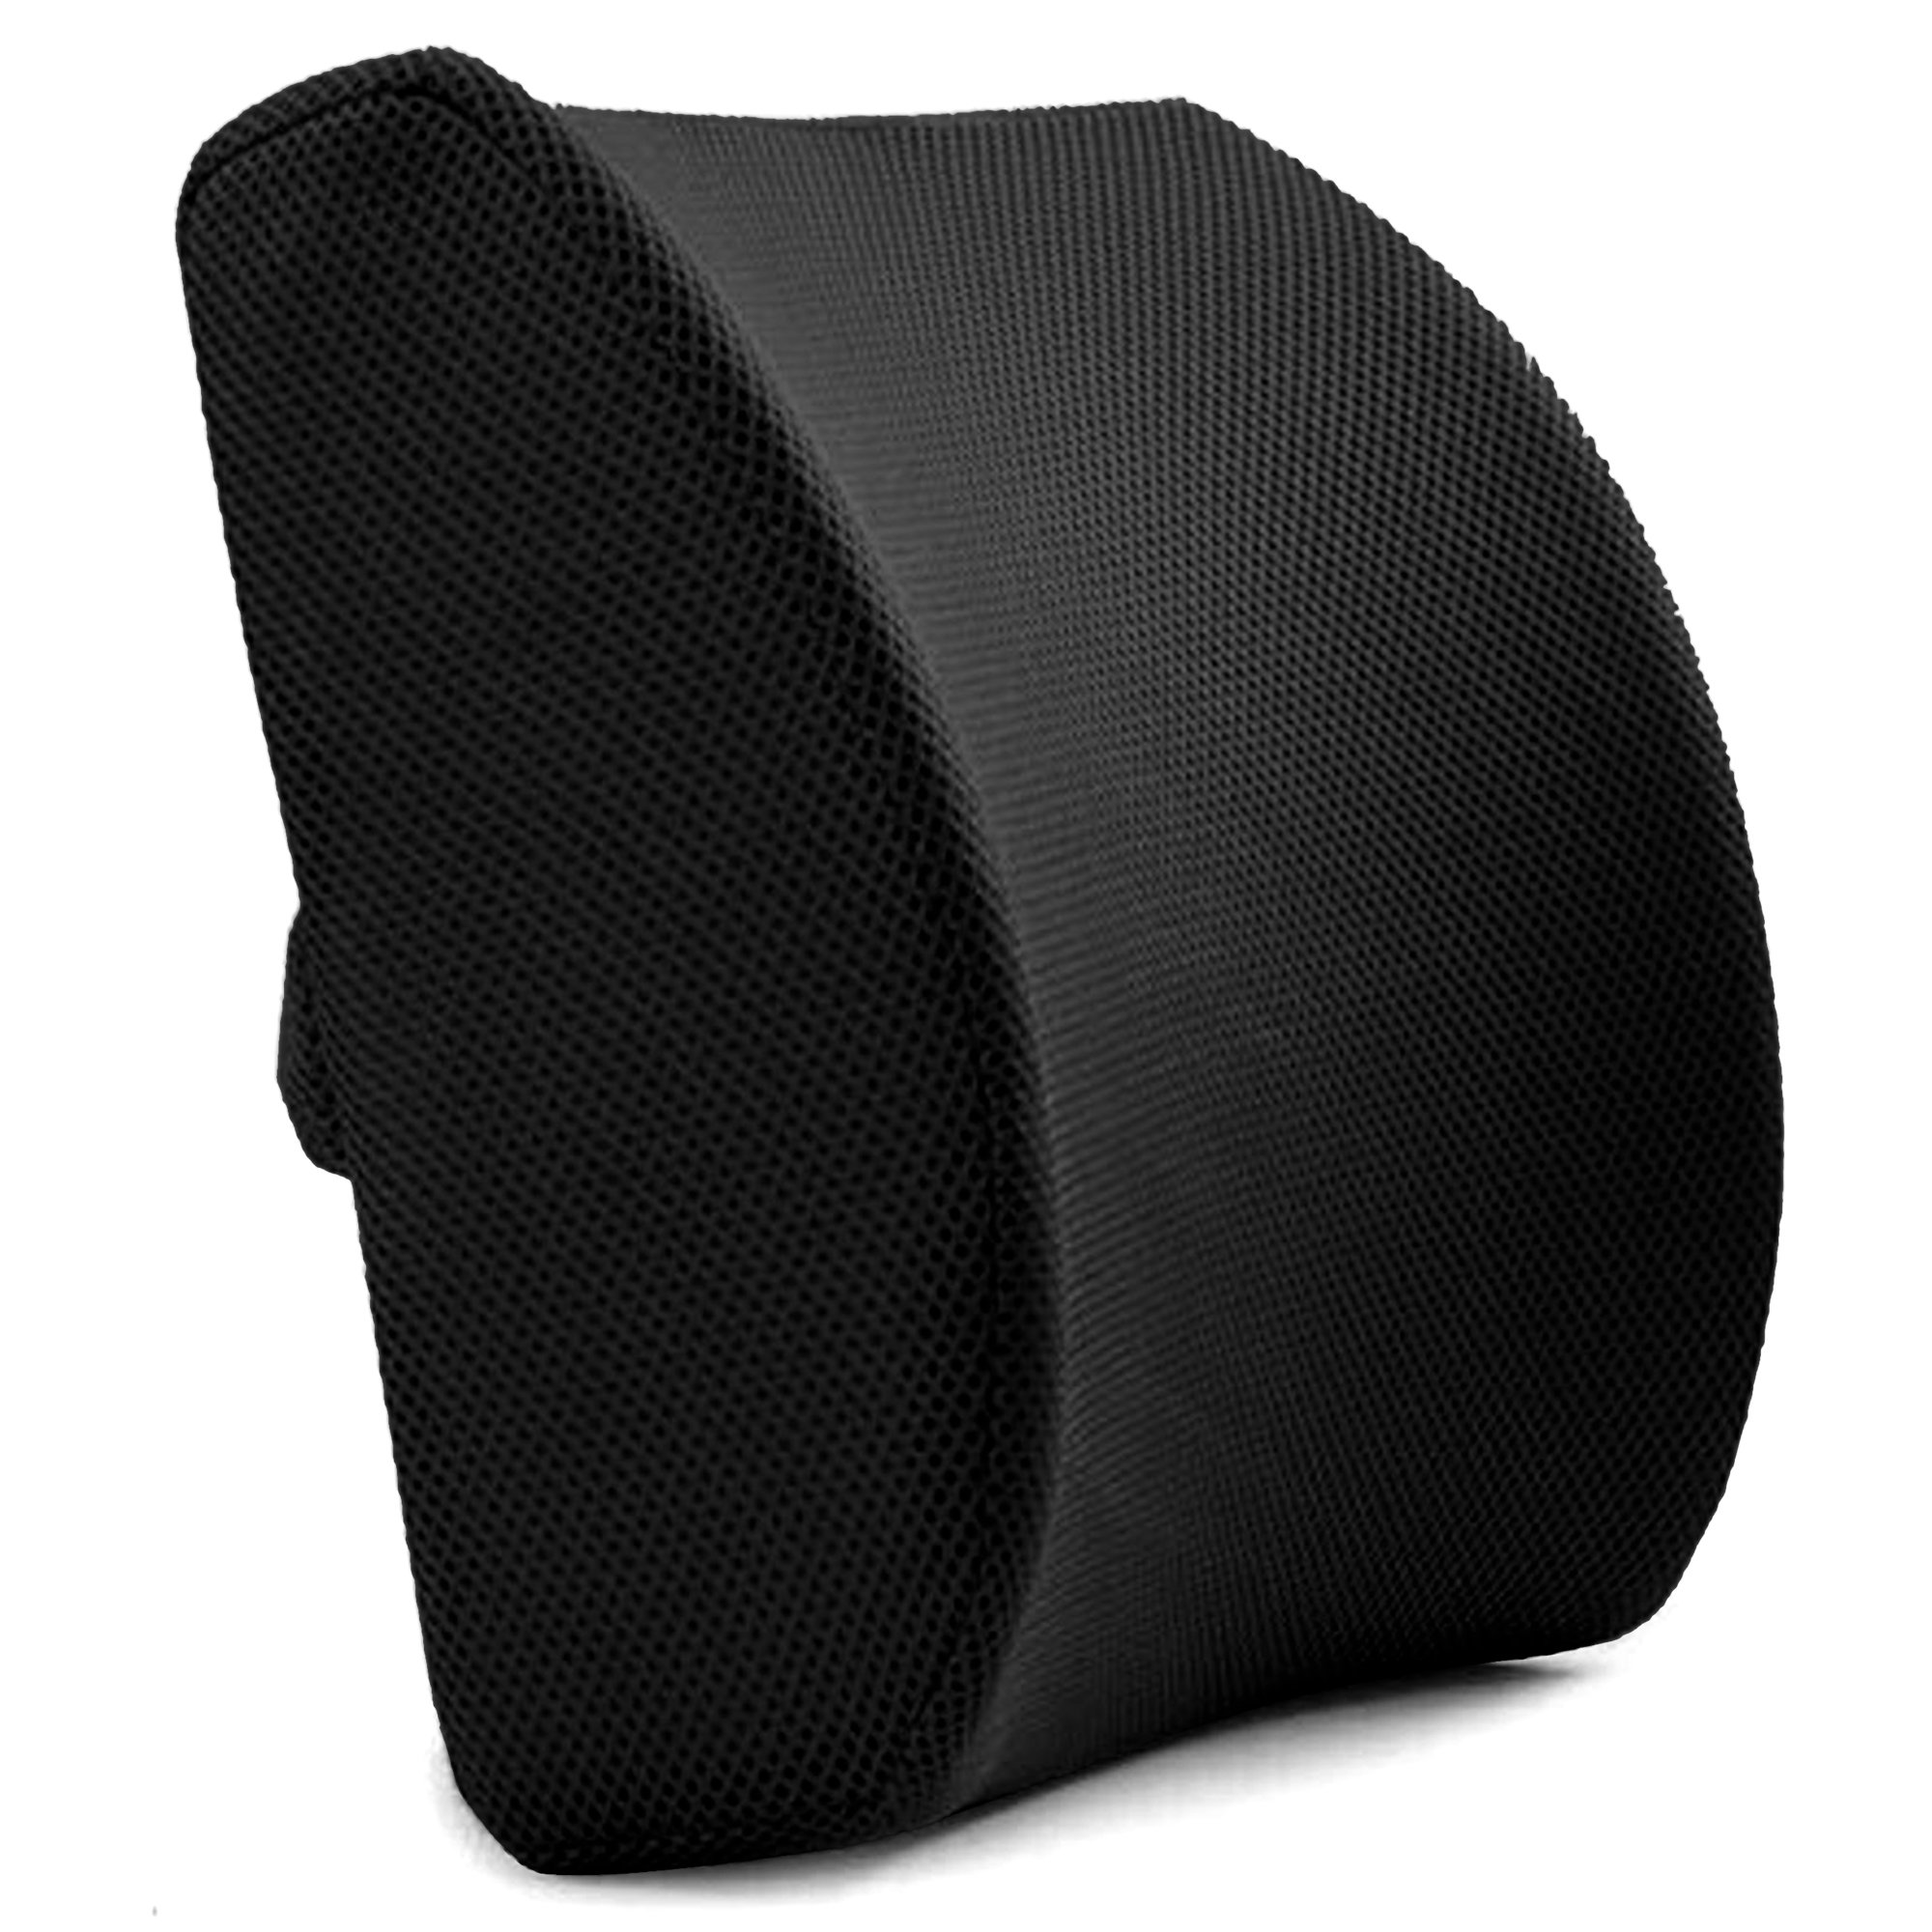 Back Support Cushion (Black) - Orthopedic Support - Memory Foam Lumbar Support Pillow with 3D Mesh Cover for Balanced Firmness by Slick Solutions